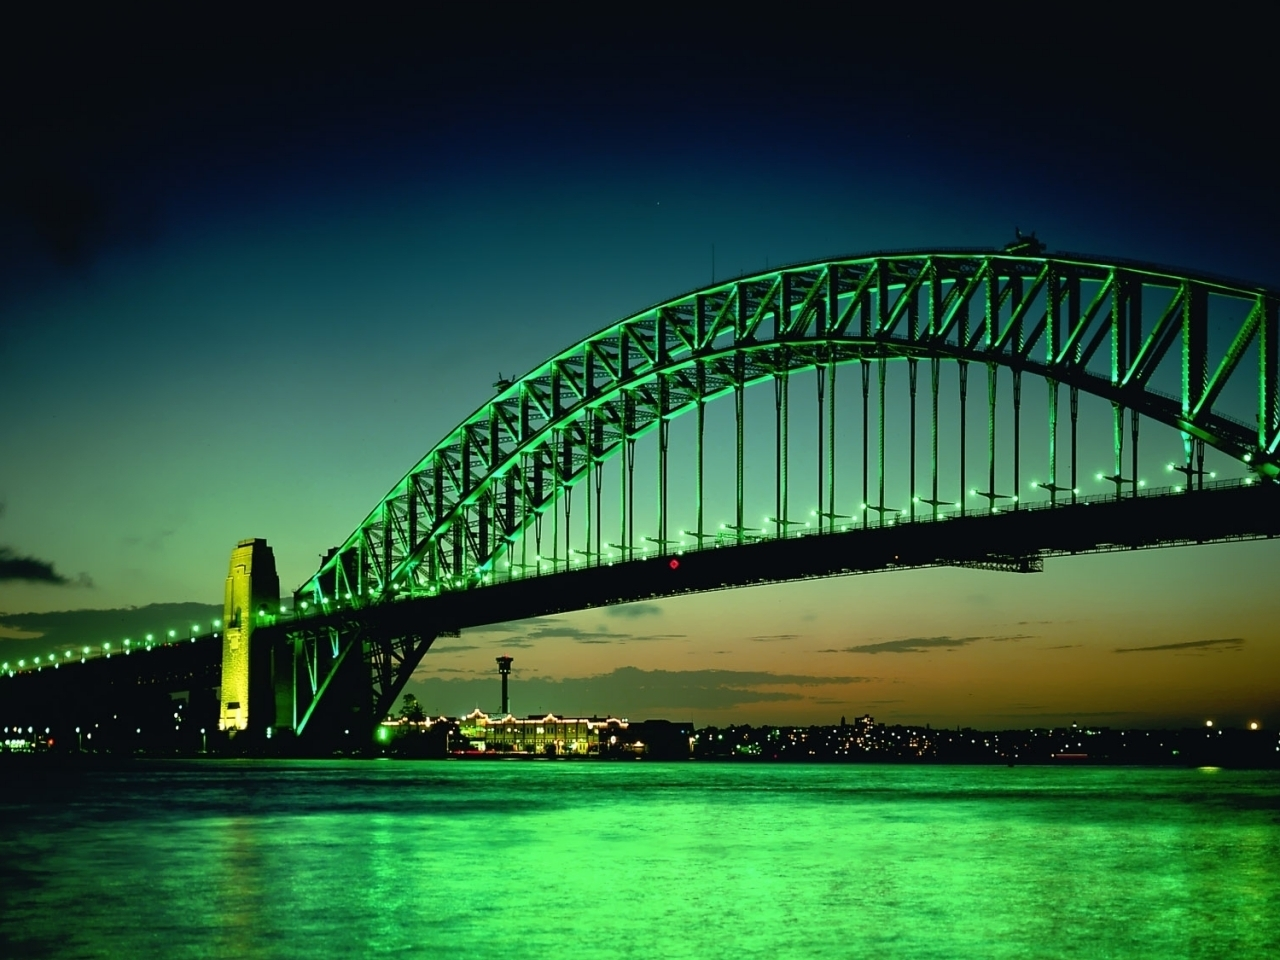 24903 download wallpaper Landscape, Cities, Rivers, Bridges, Night, Architecture screensavers and pictures for free